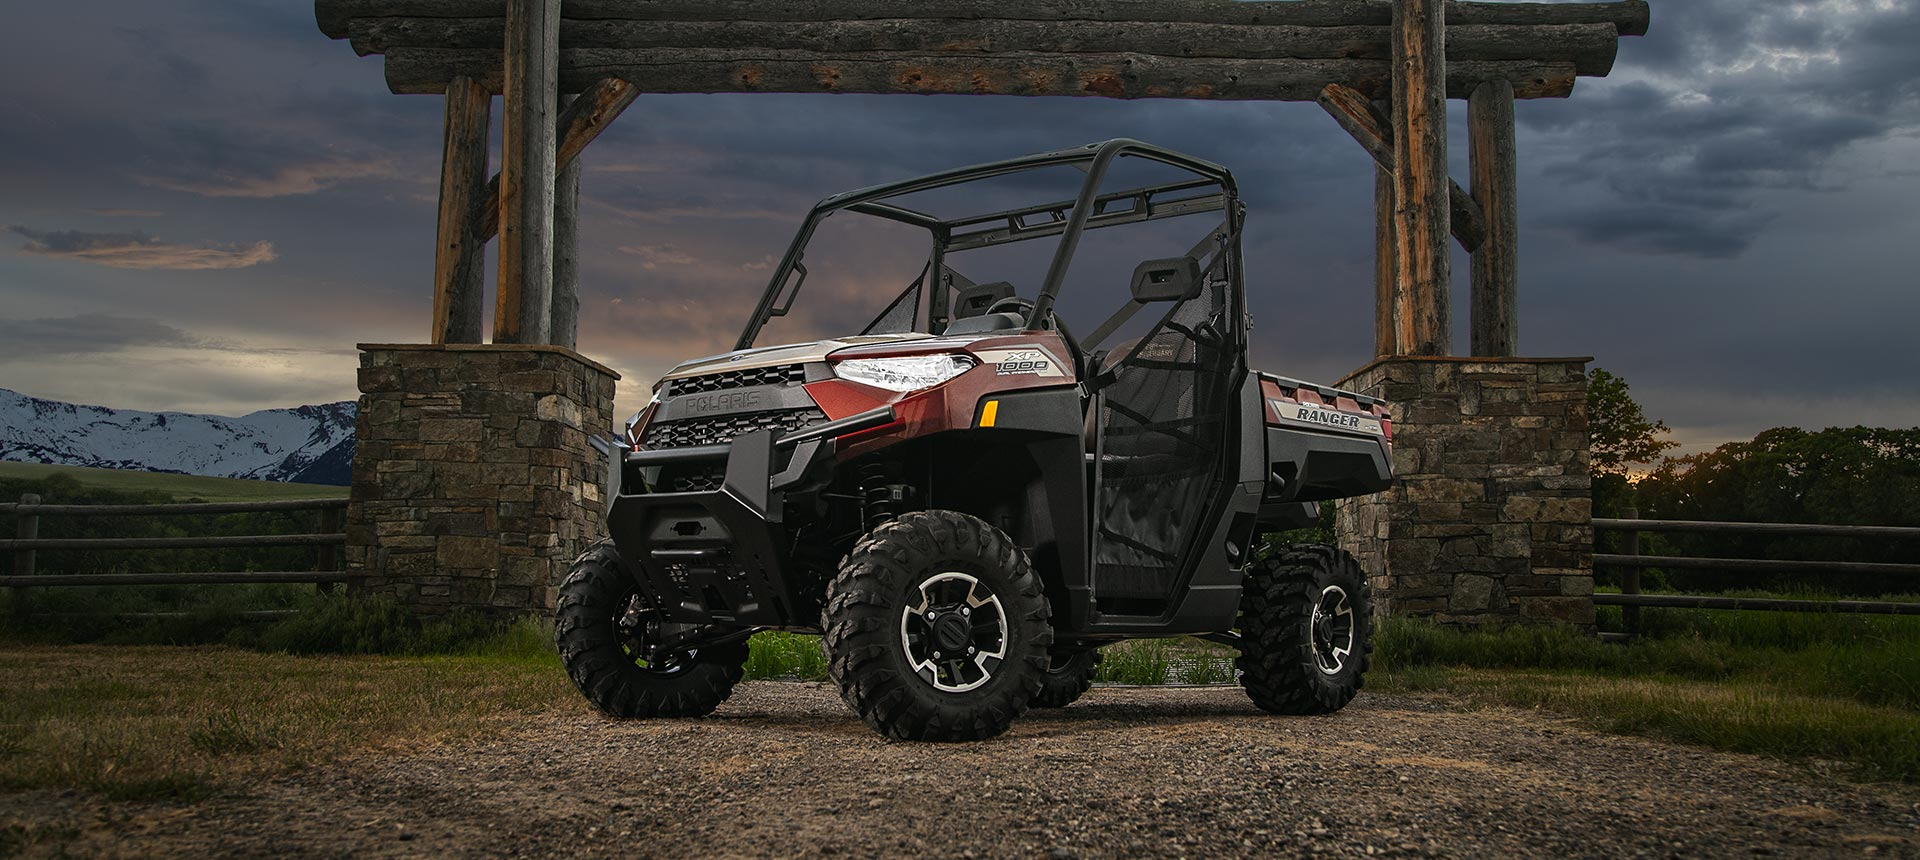 2019 Polaris Ranger XP 1000 EPS in Homer, Alaska